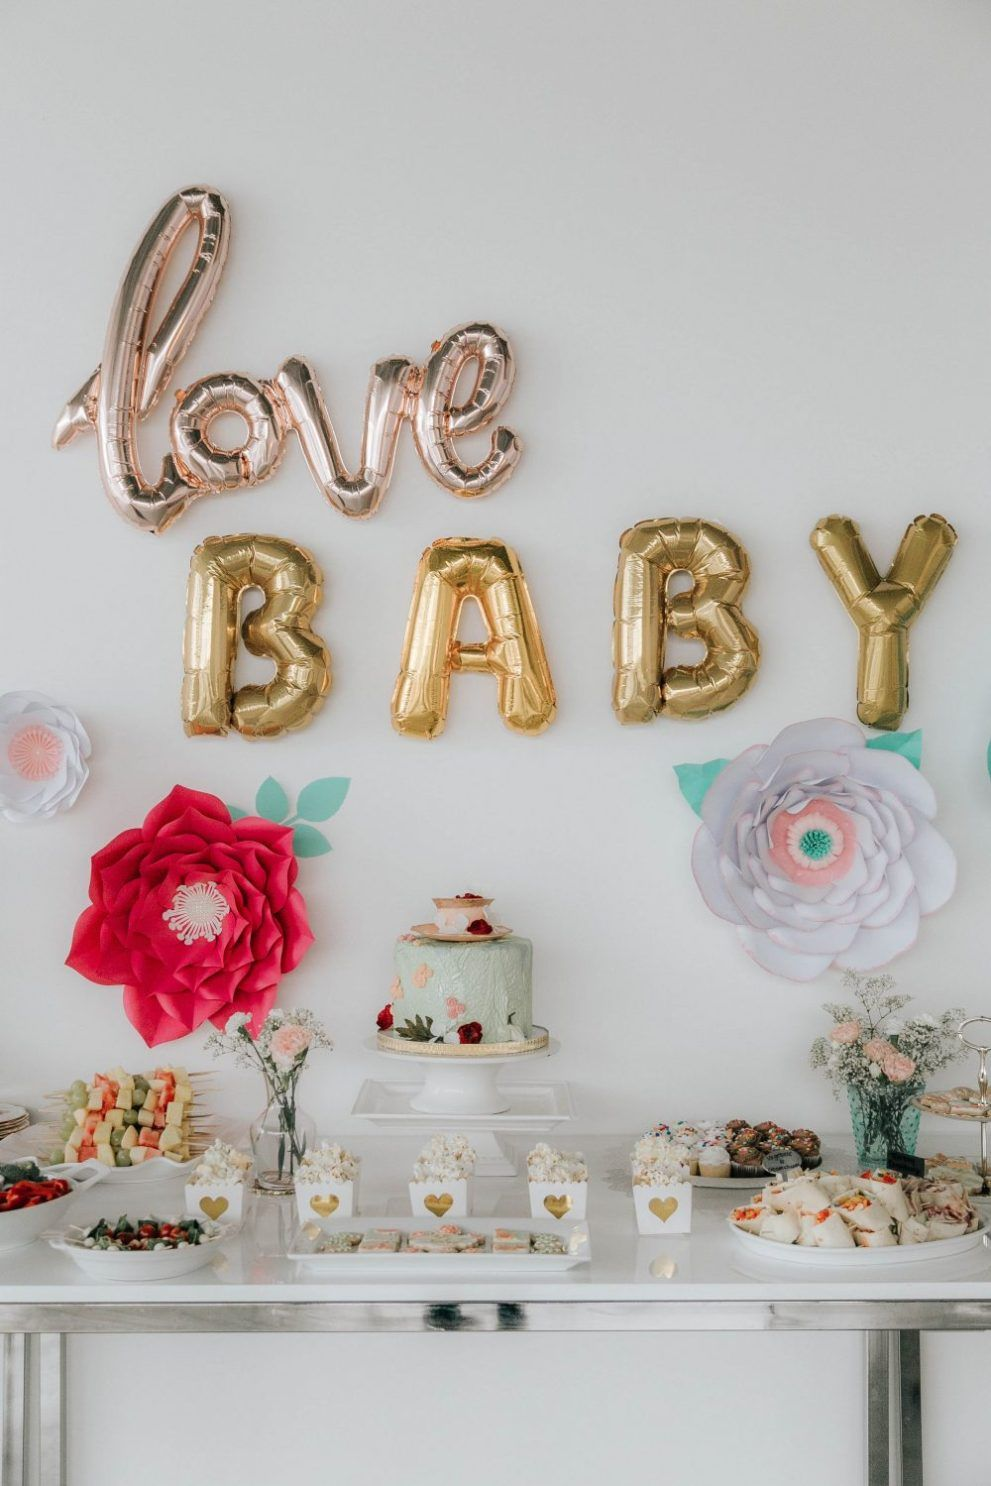 Decoration Ideas Baby Shower Girl 44 Baby Shower Ideas For Boys And Girls Baby Shower Food And